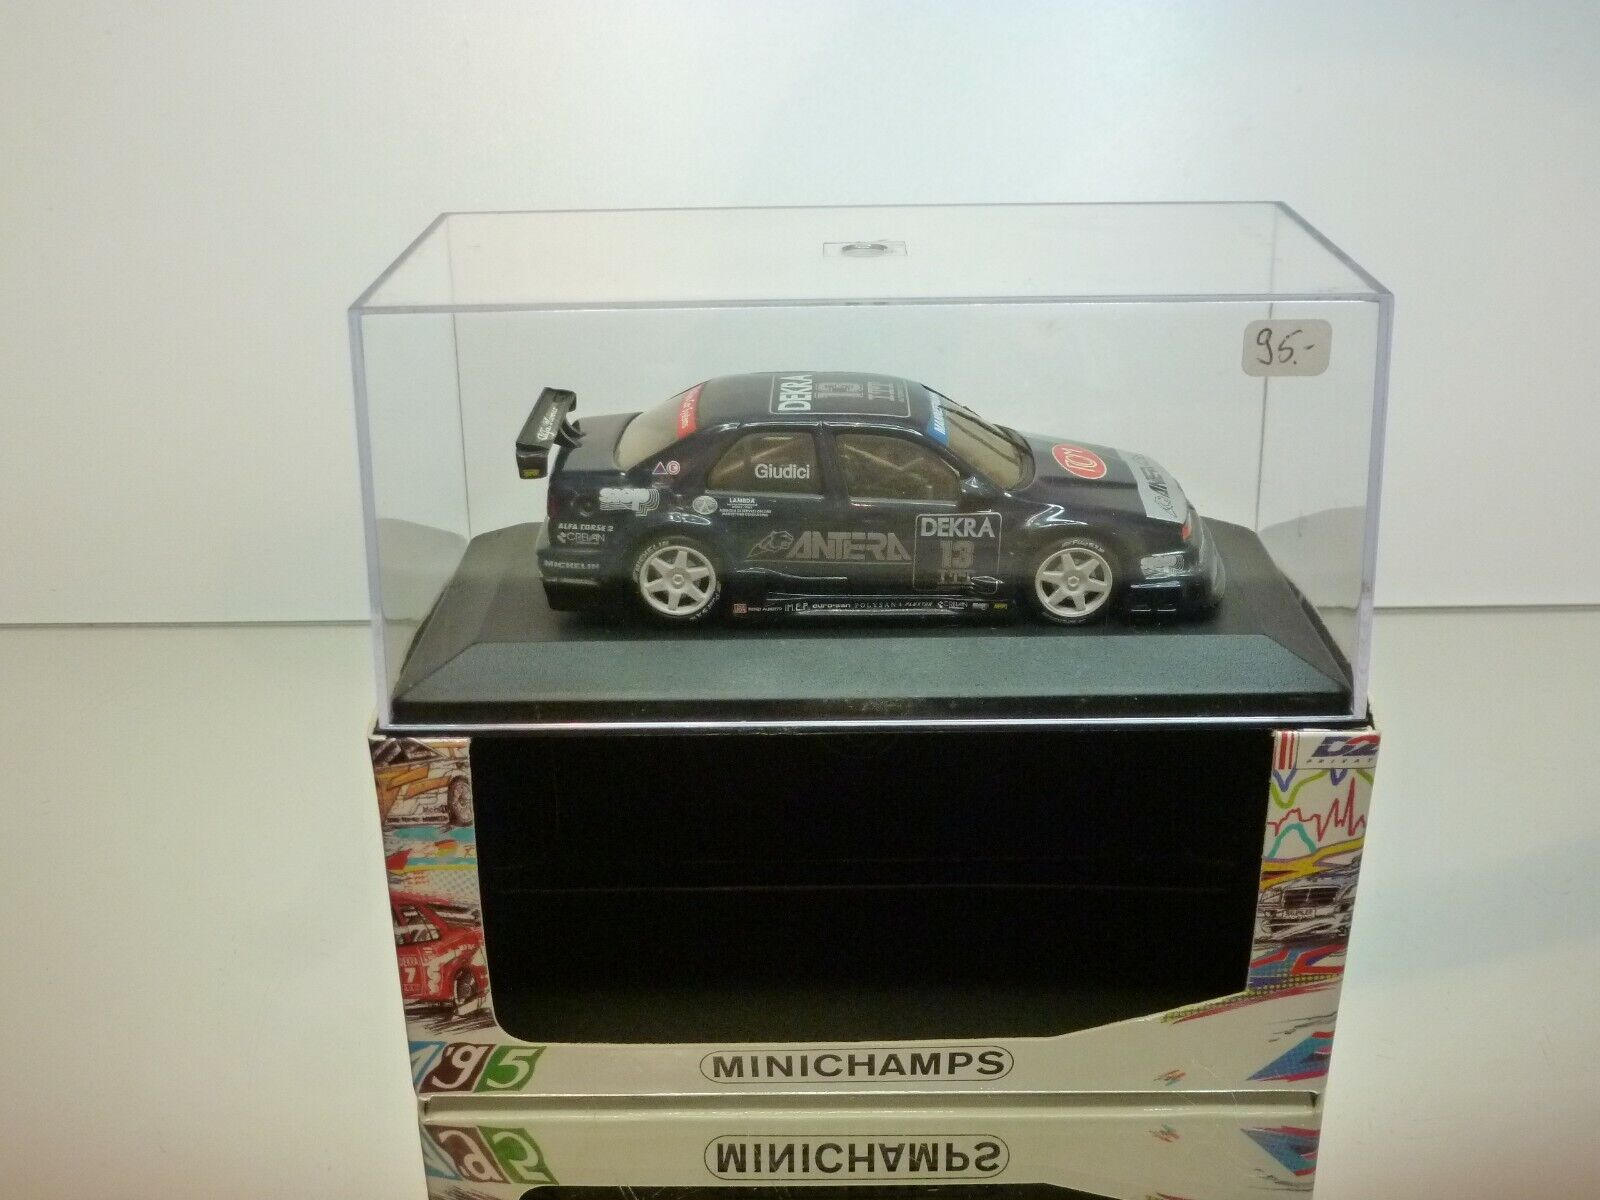 MINICHAMPS ALFA ROMEO 155 V6 DTM 1995 GIUDICCI  13 - bleu - GOOD  IN BOX